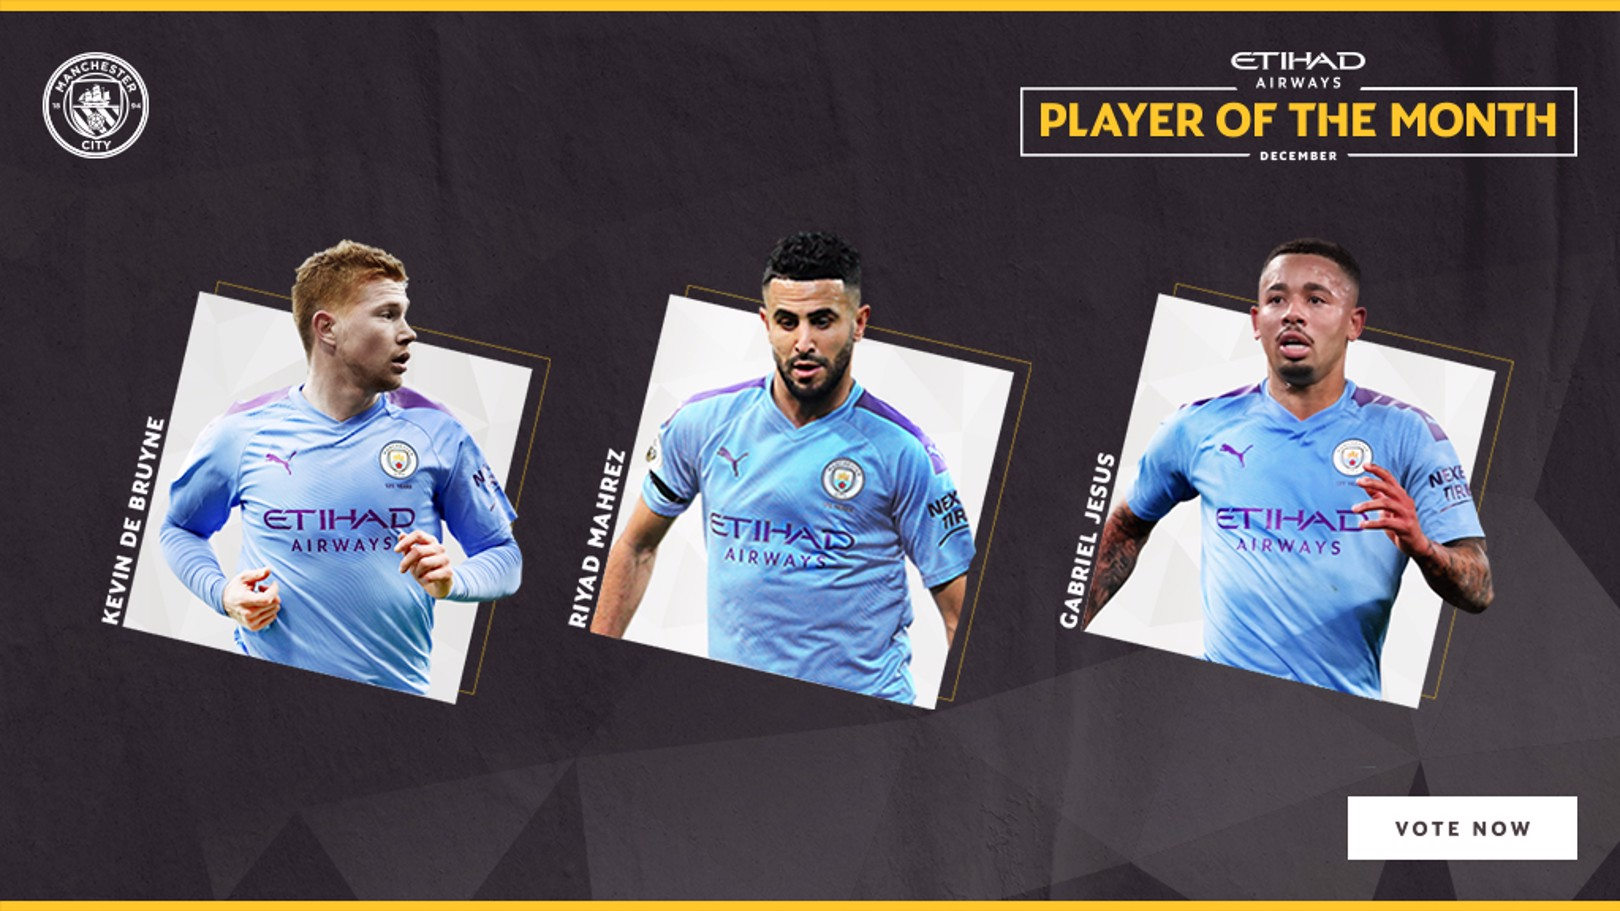 NOMINEES: Kevin De Bruyne, Riyad Mahrez and Gabriel Jesus are up for December's Etihad Player of the Month.